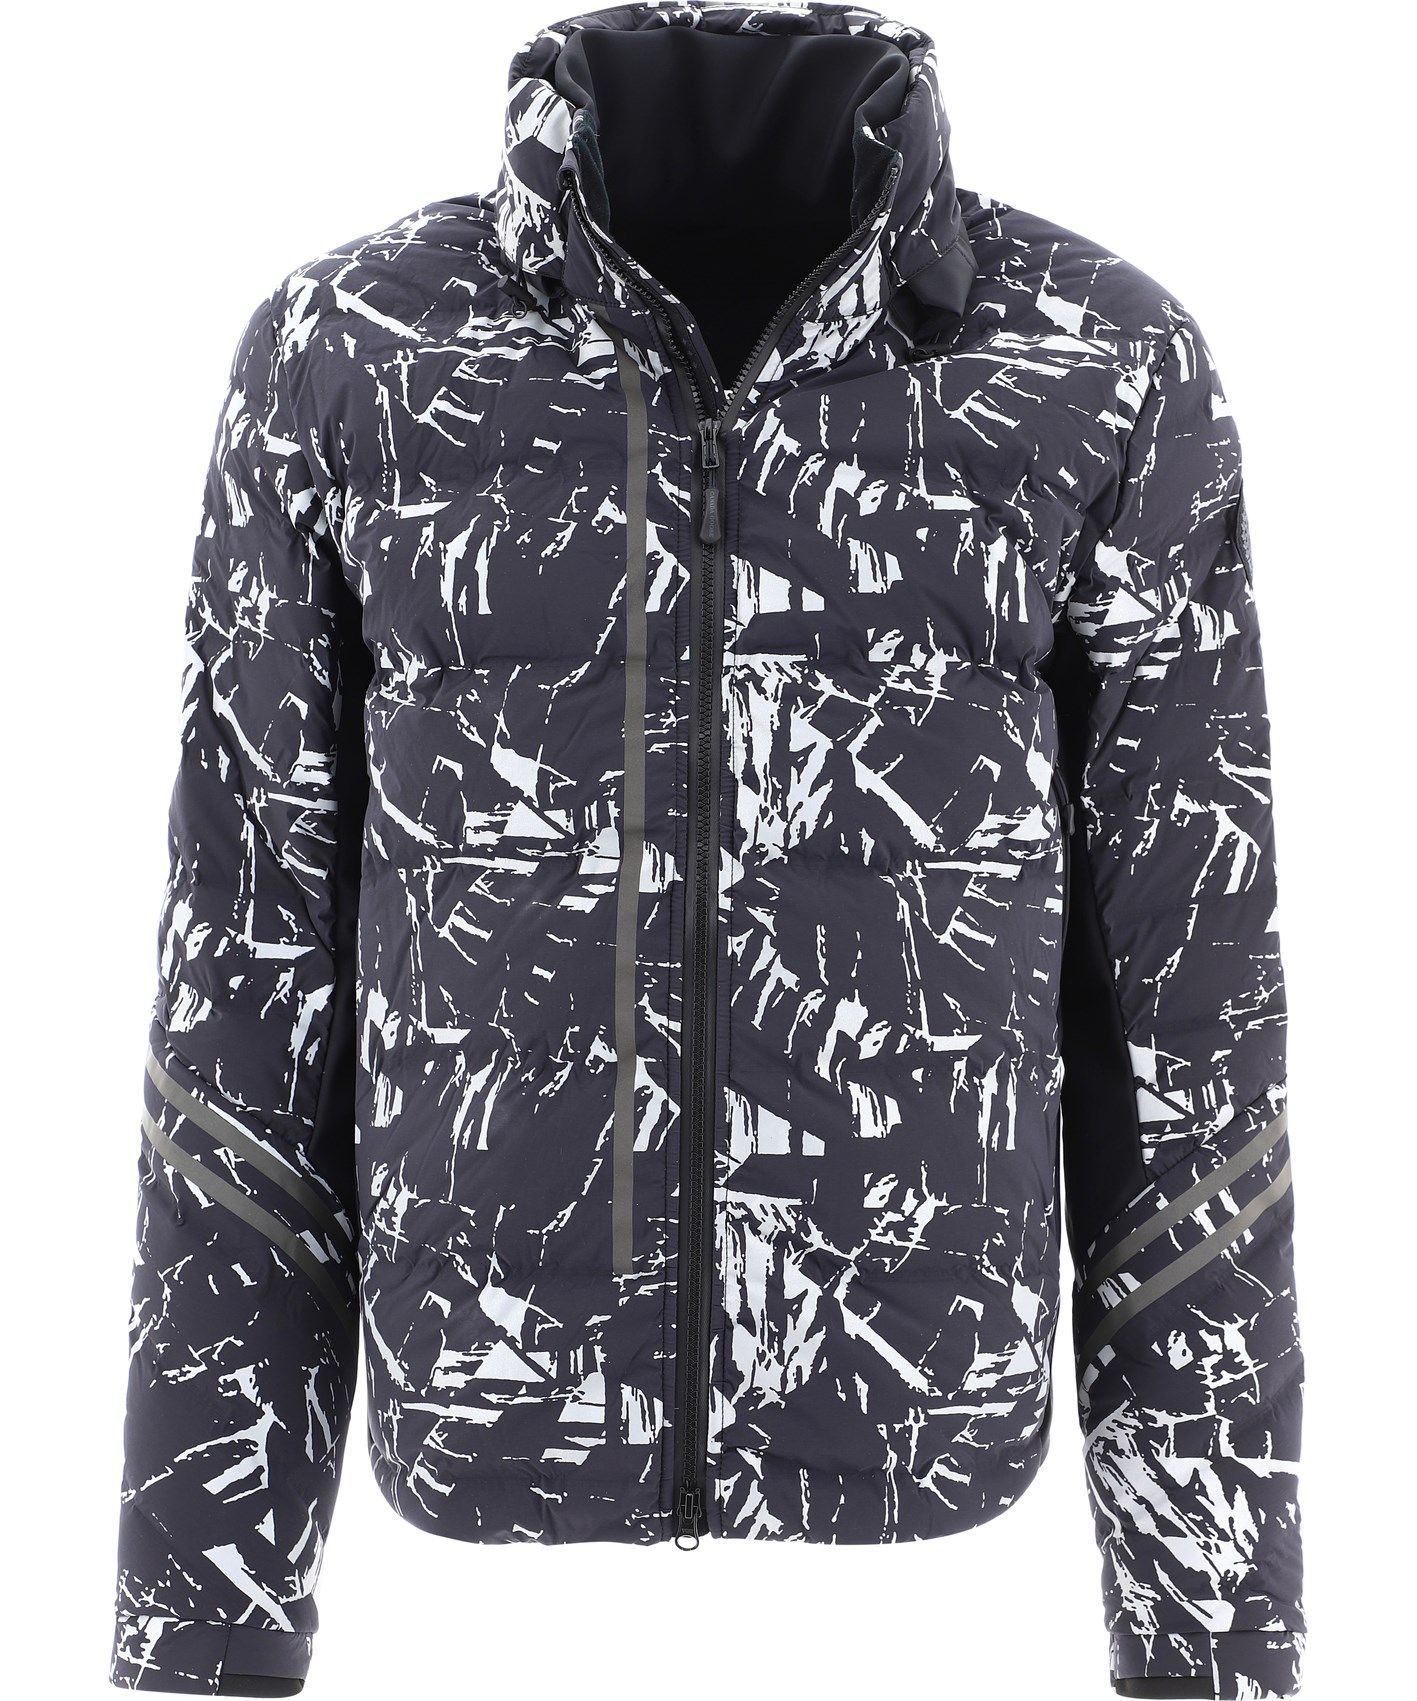 Canada Goose CANADA GOOSE MEN'S CG2731MBR35916 BLACK OTHER MATERIALS OUTERWEAR JACKET